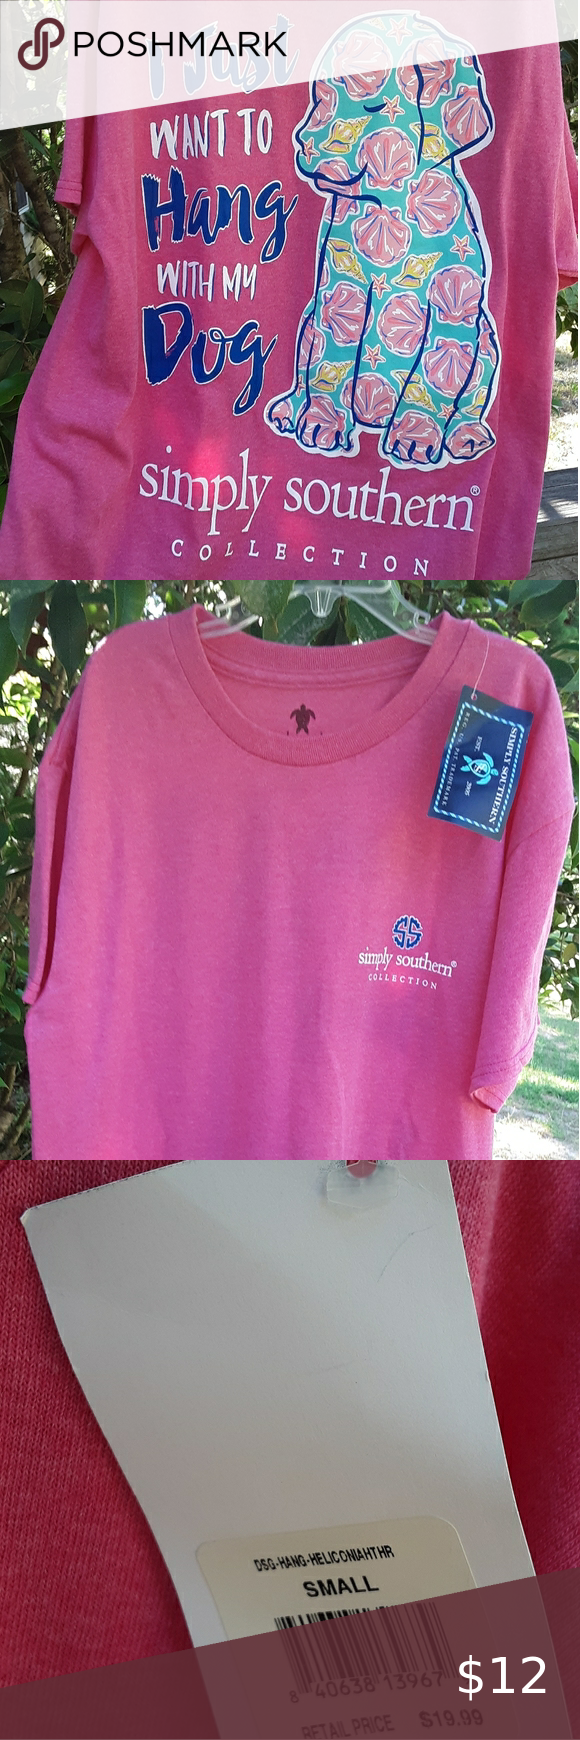 NWT Simply Southern Tee in 2020 Simply southern tees